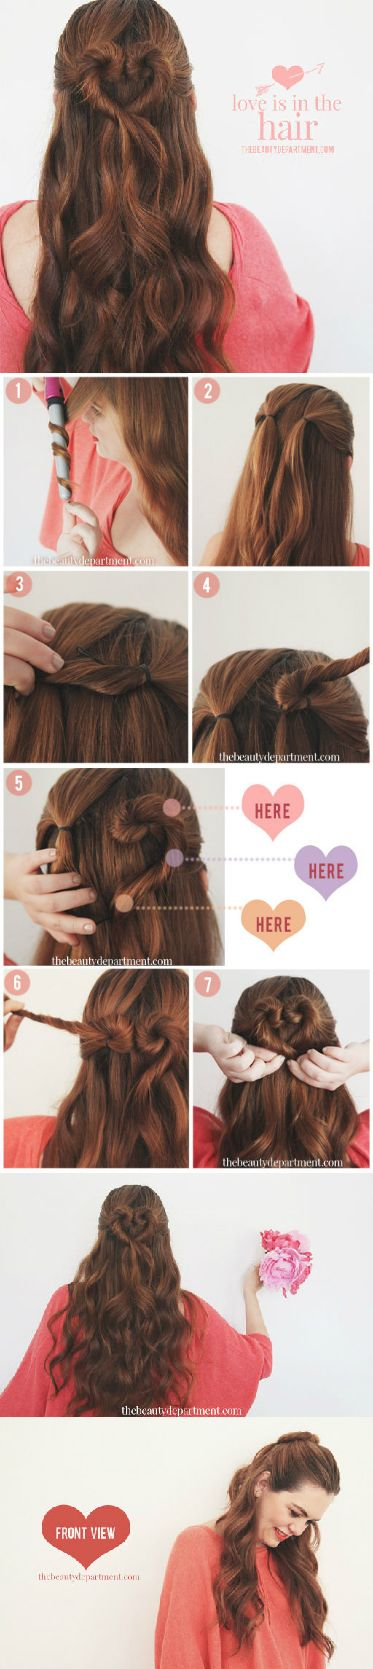 hair tutorial - THE HEART BUN